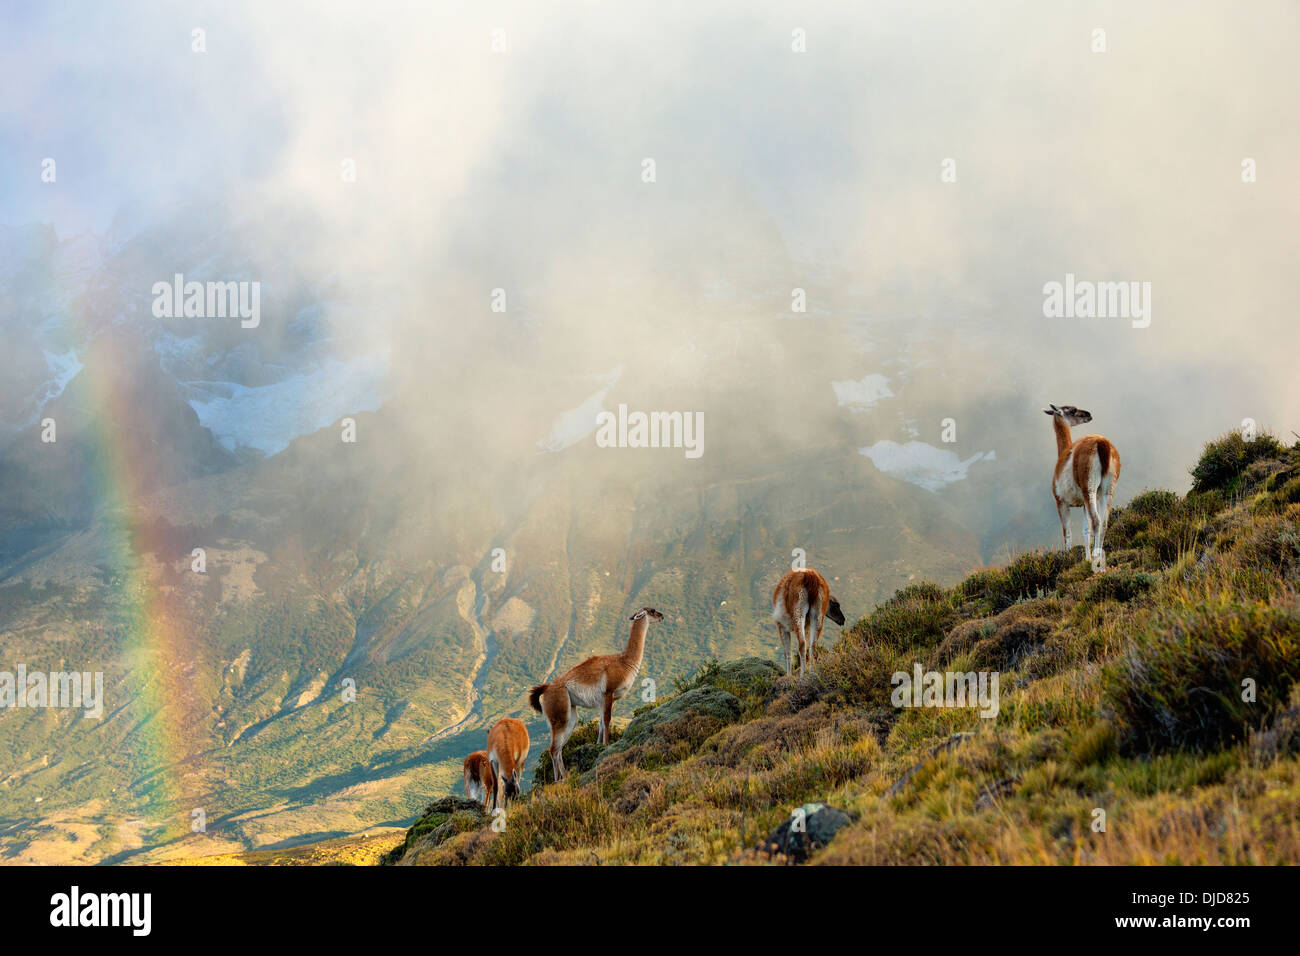 Small group of Guanacos(Lama guanicoe) standing in the mist on the hillside with Torres del Paine mountains and a rainbow in the - Stock Image